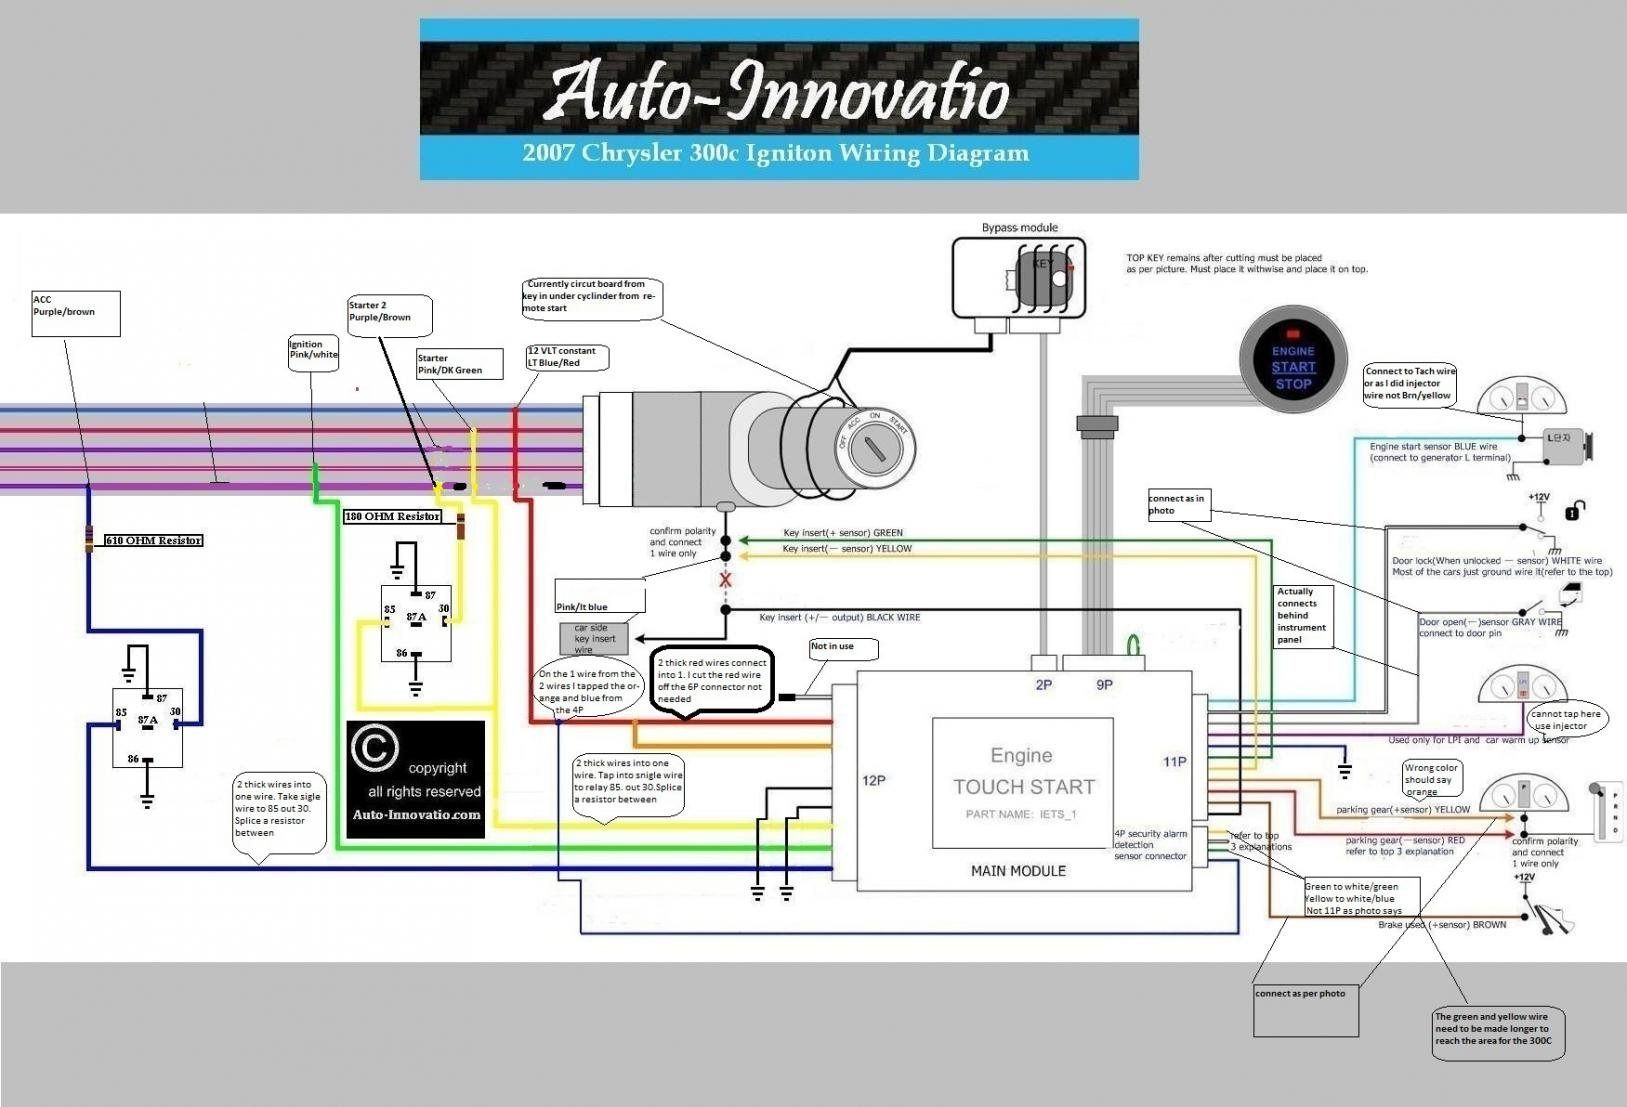 hight resolution of radio wiring diagram for chrysler pacifica images chrysler radio wiring diagram for 2004 chrysler pacifica images